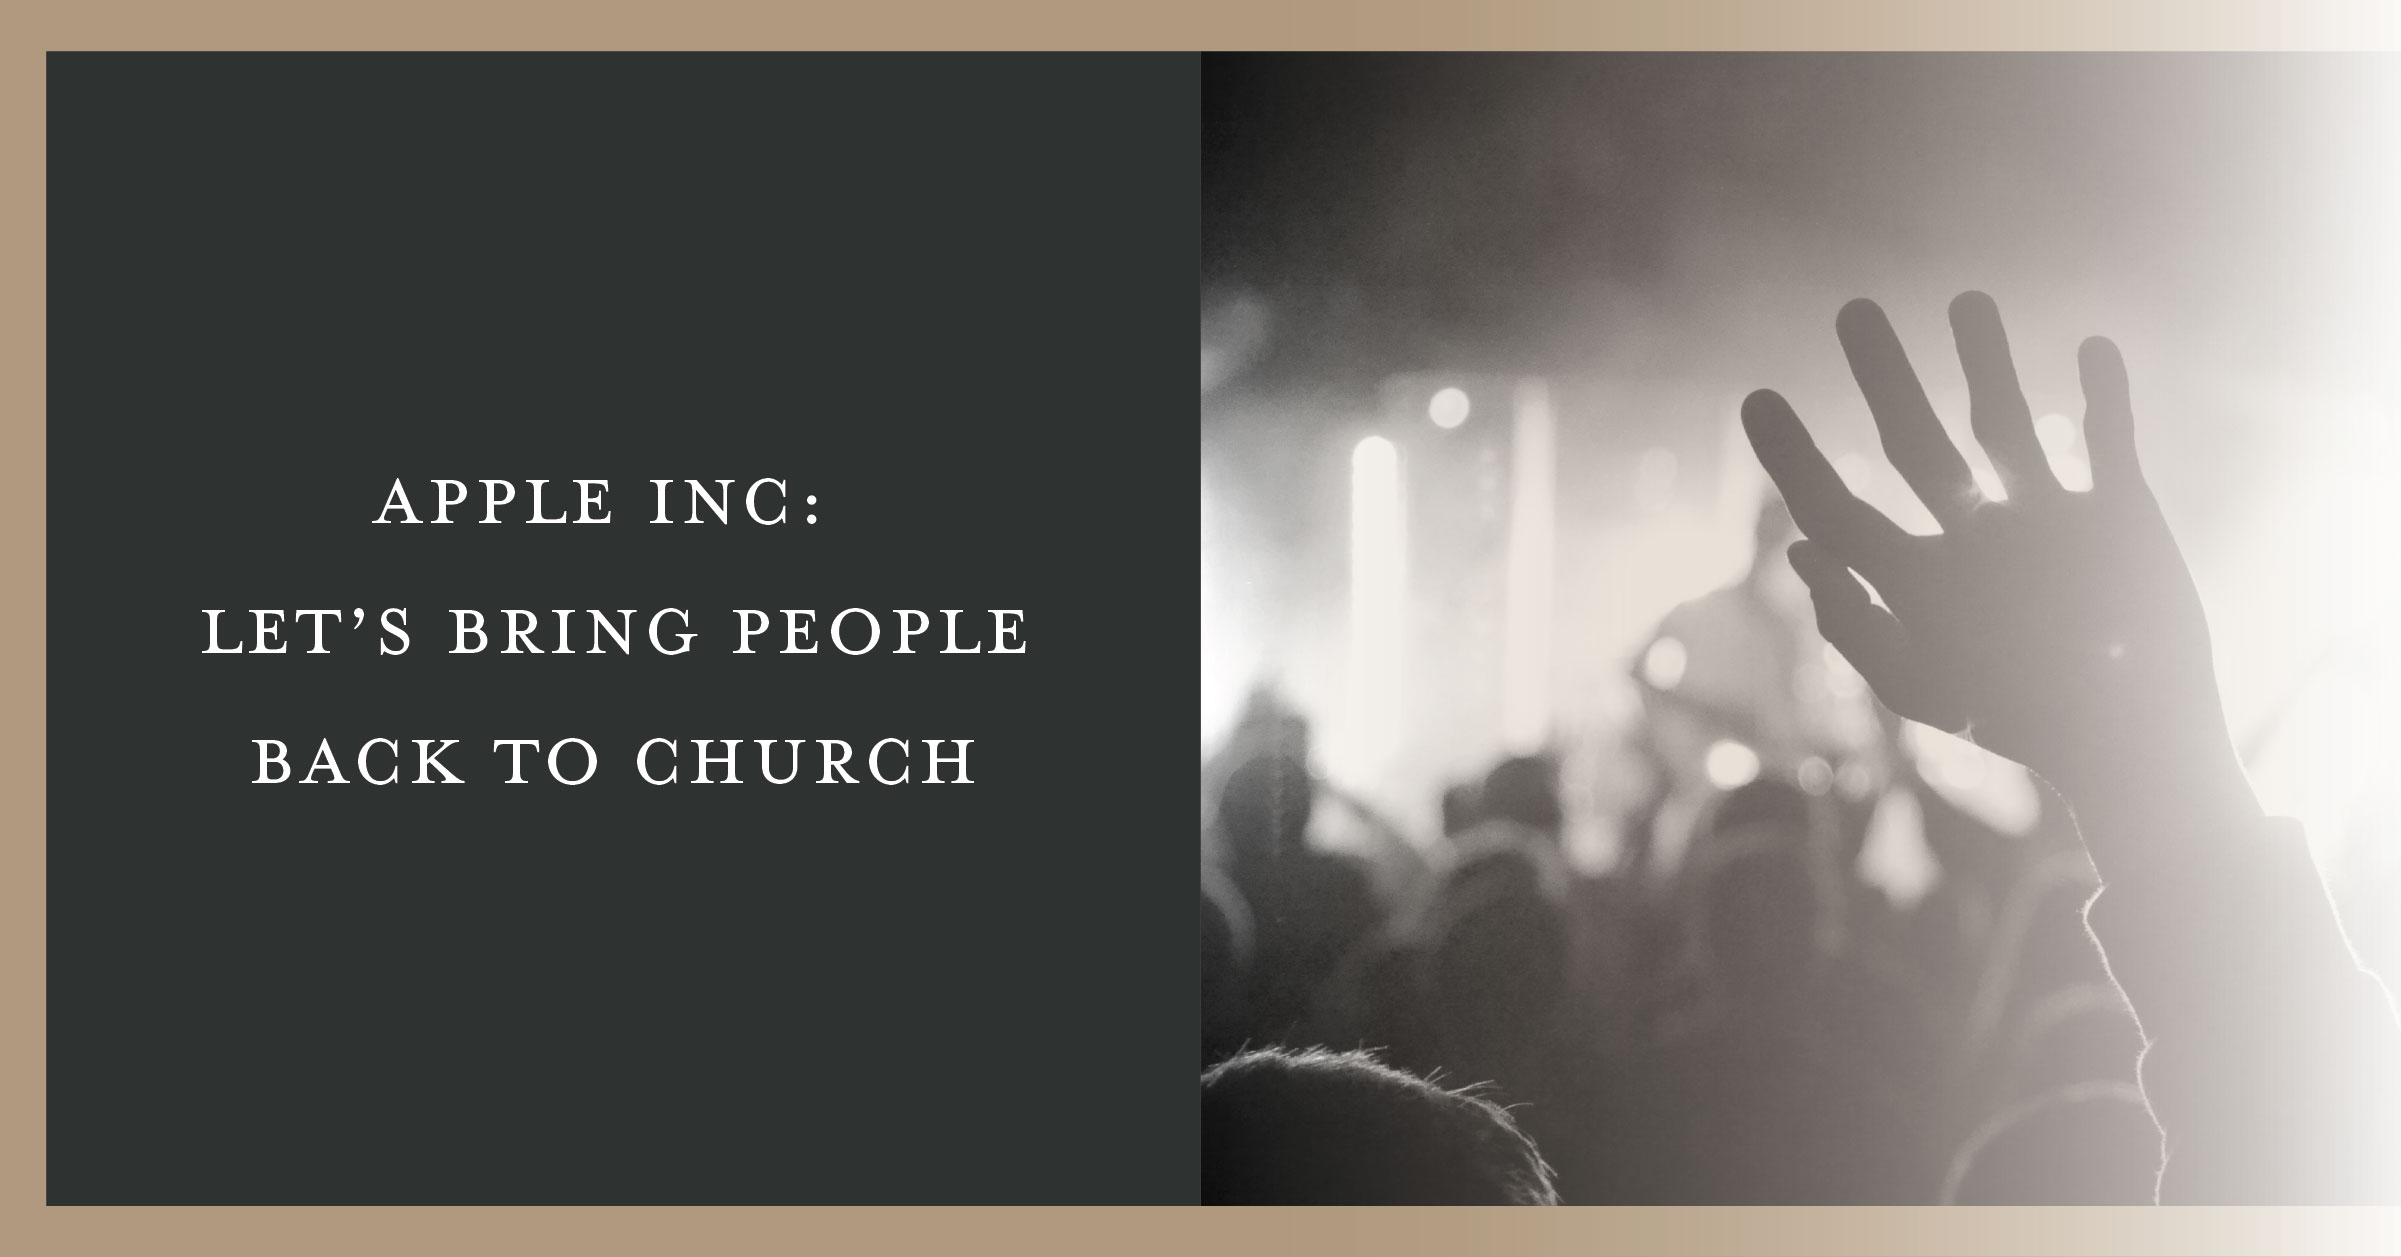 Apple Inc: Let's Bring People Back to Church